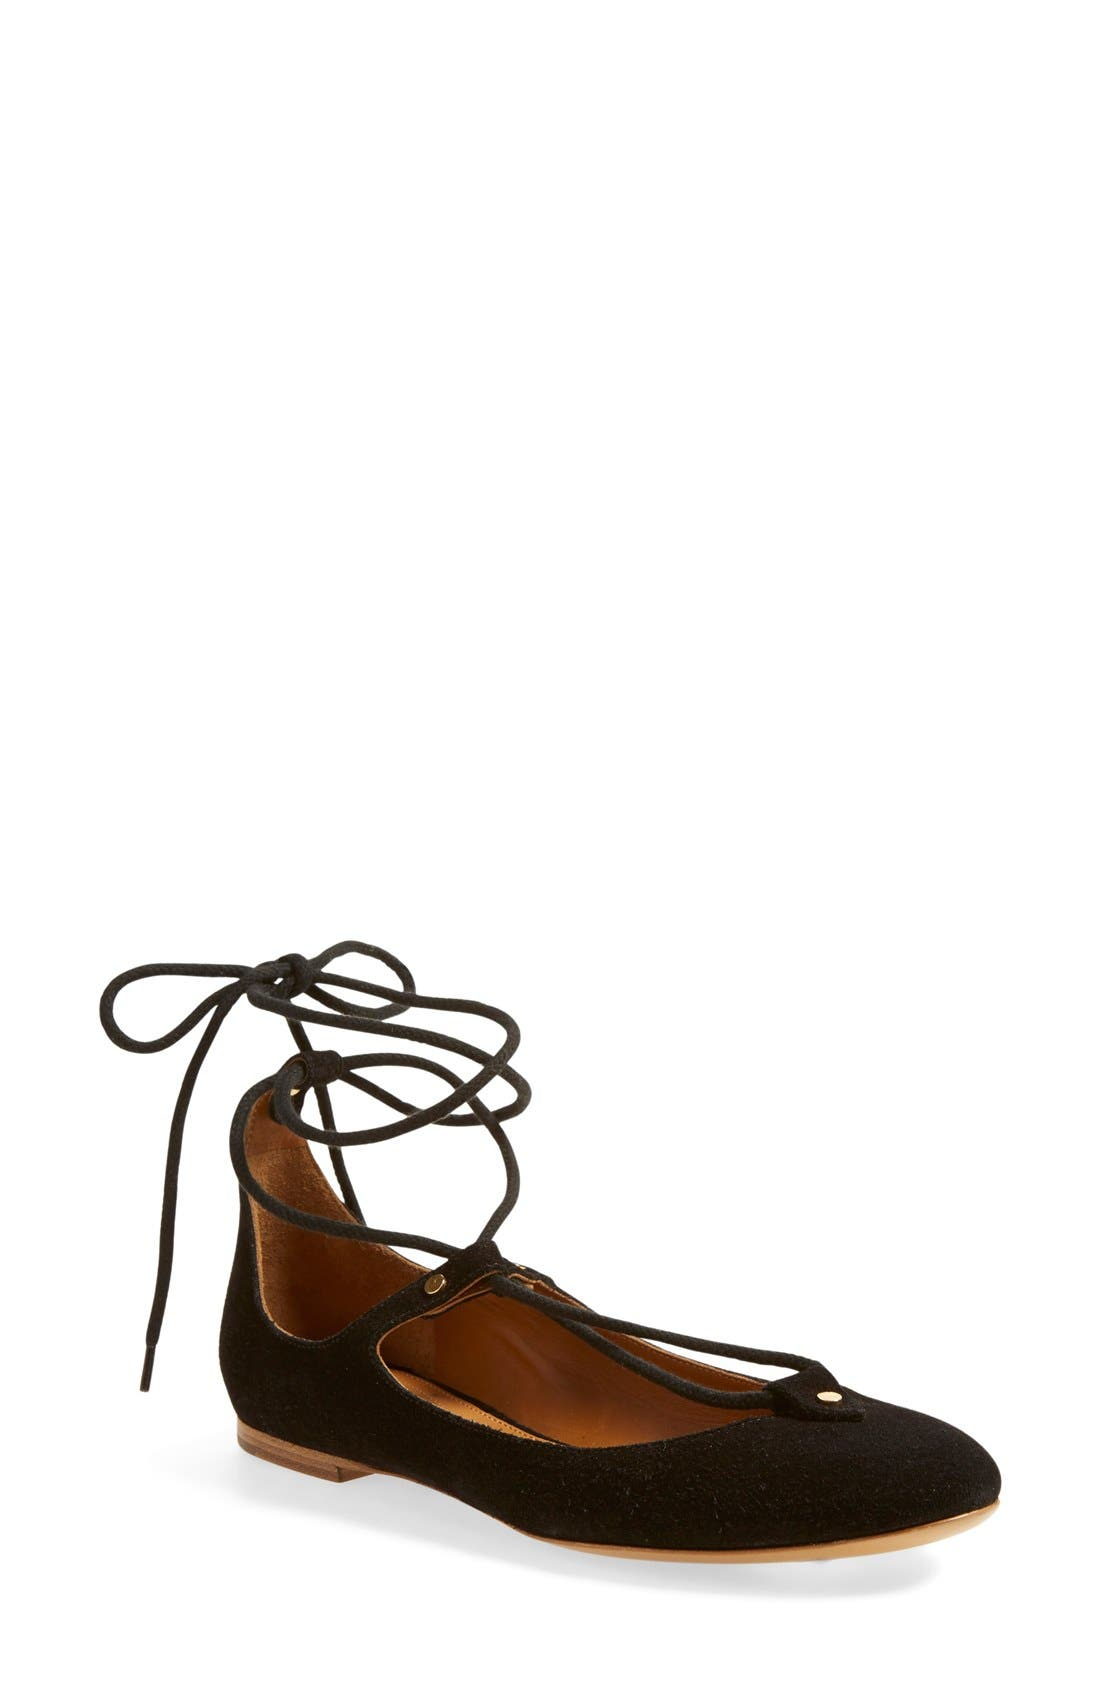 Main Image - Chloé 'Foster' Lace-Up Ballet Flat (Women)